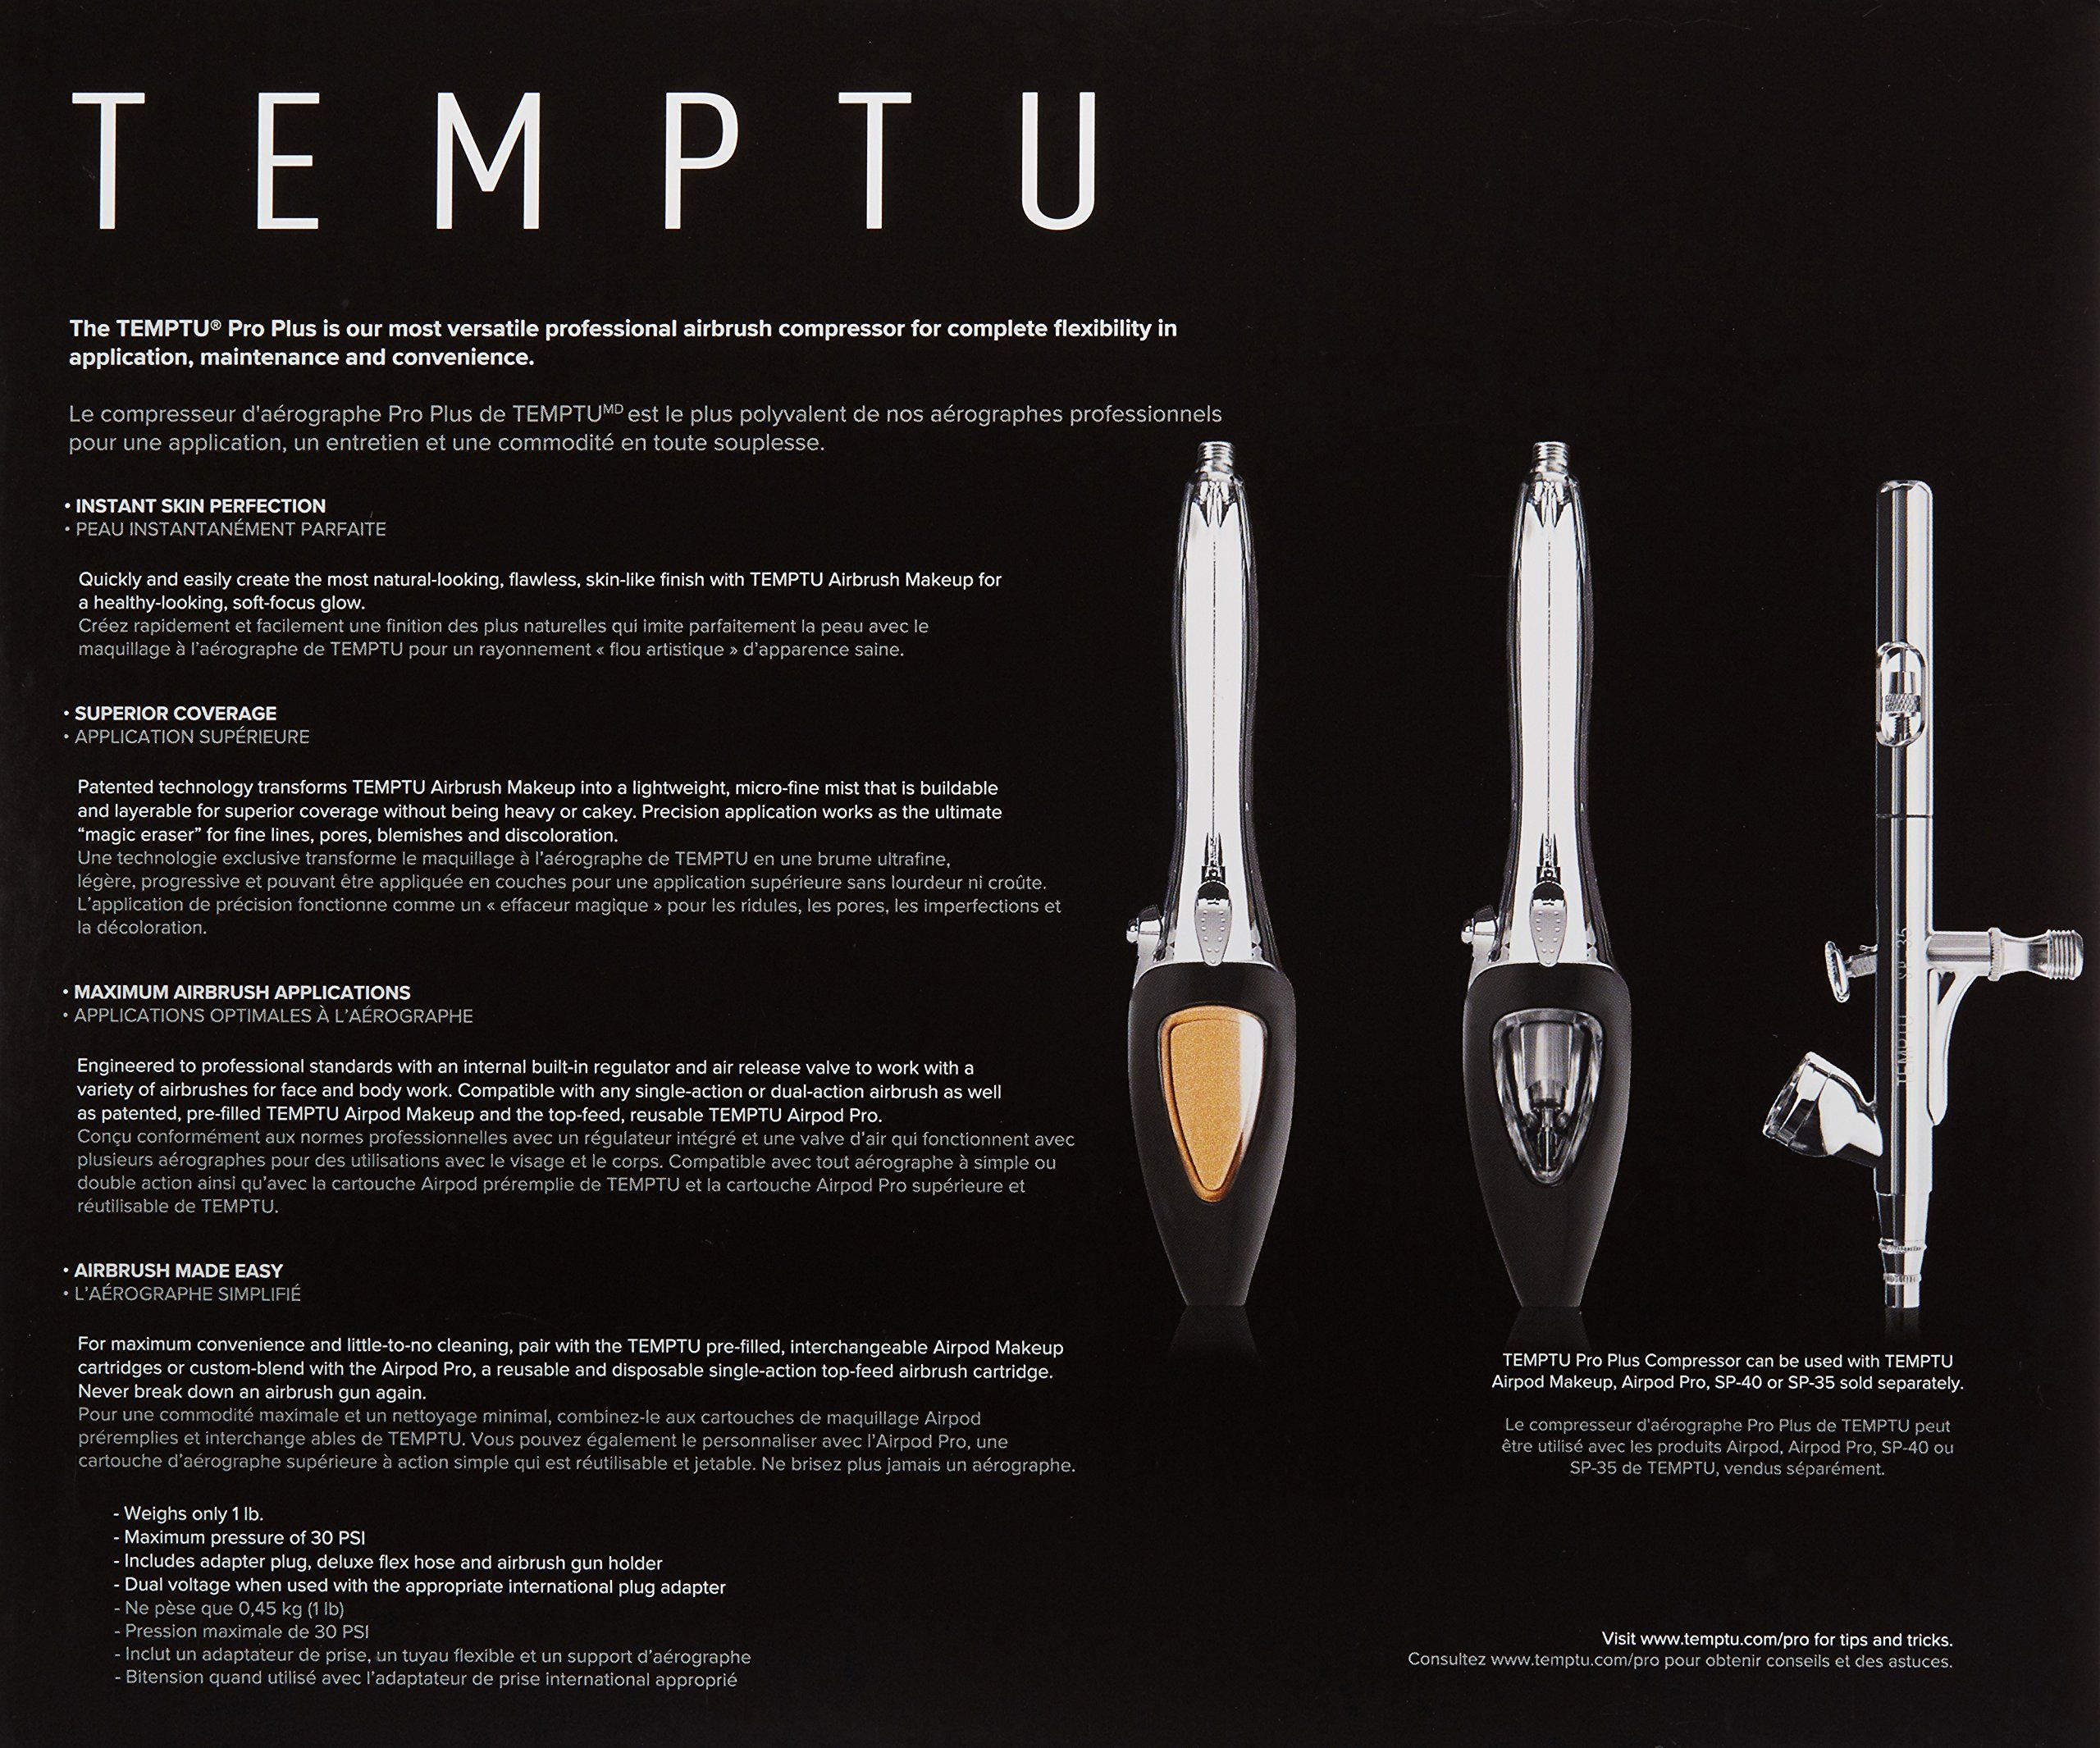 Temptu Pro Plus Compressor * Want additional info? Click